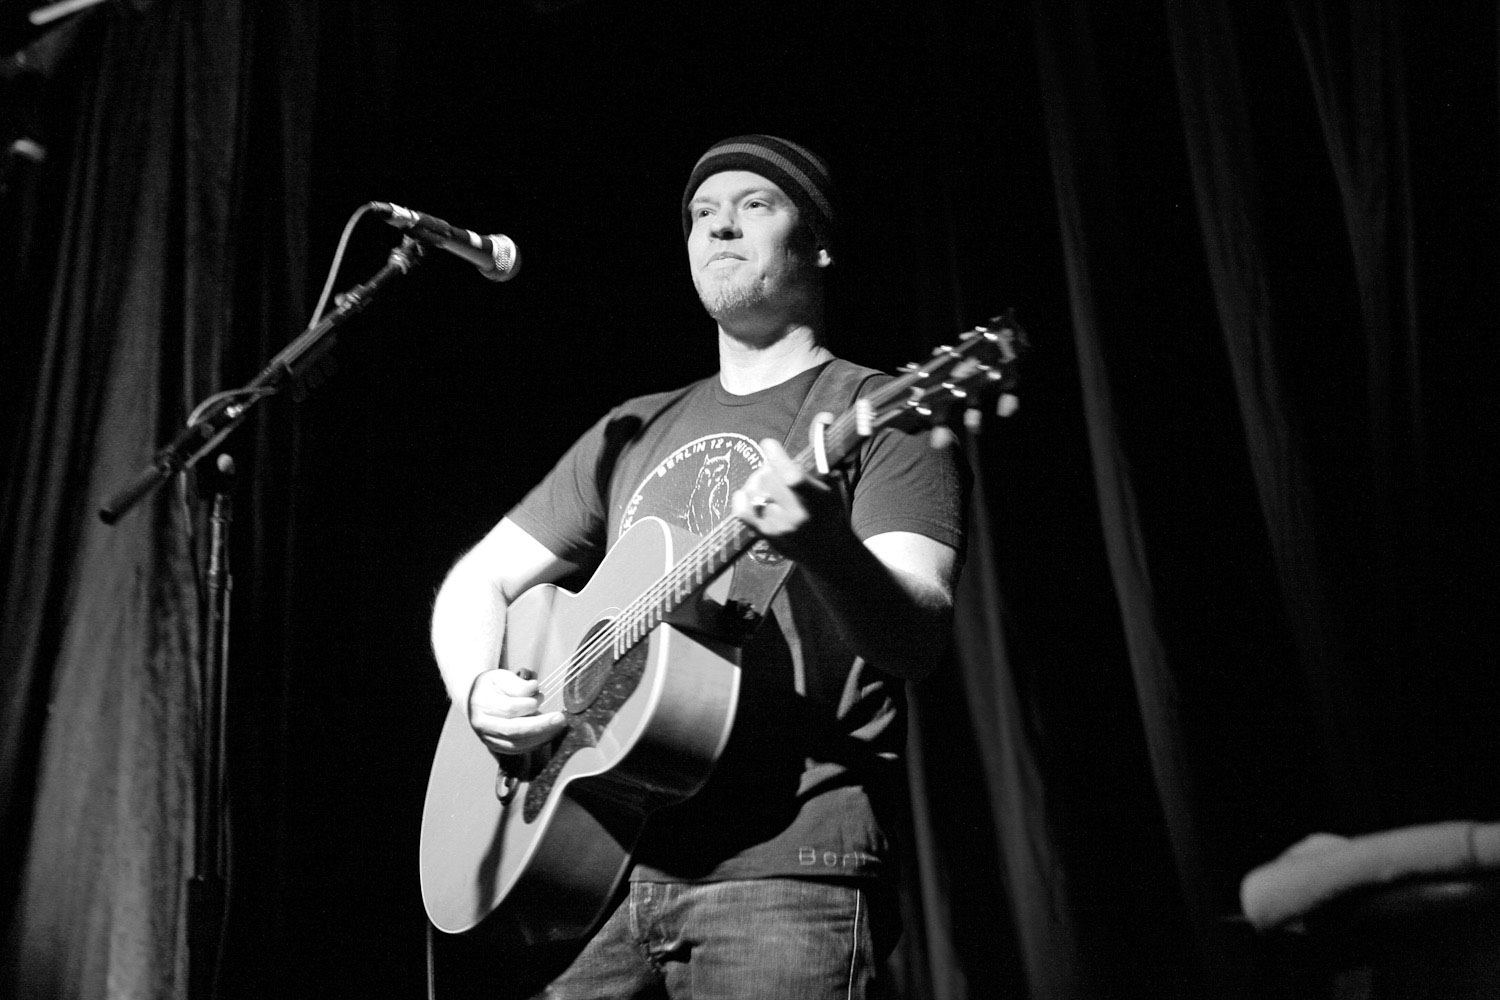 Shawn Mullins plays guitar in Portland.